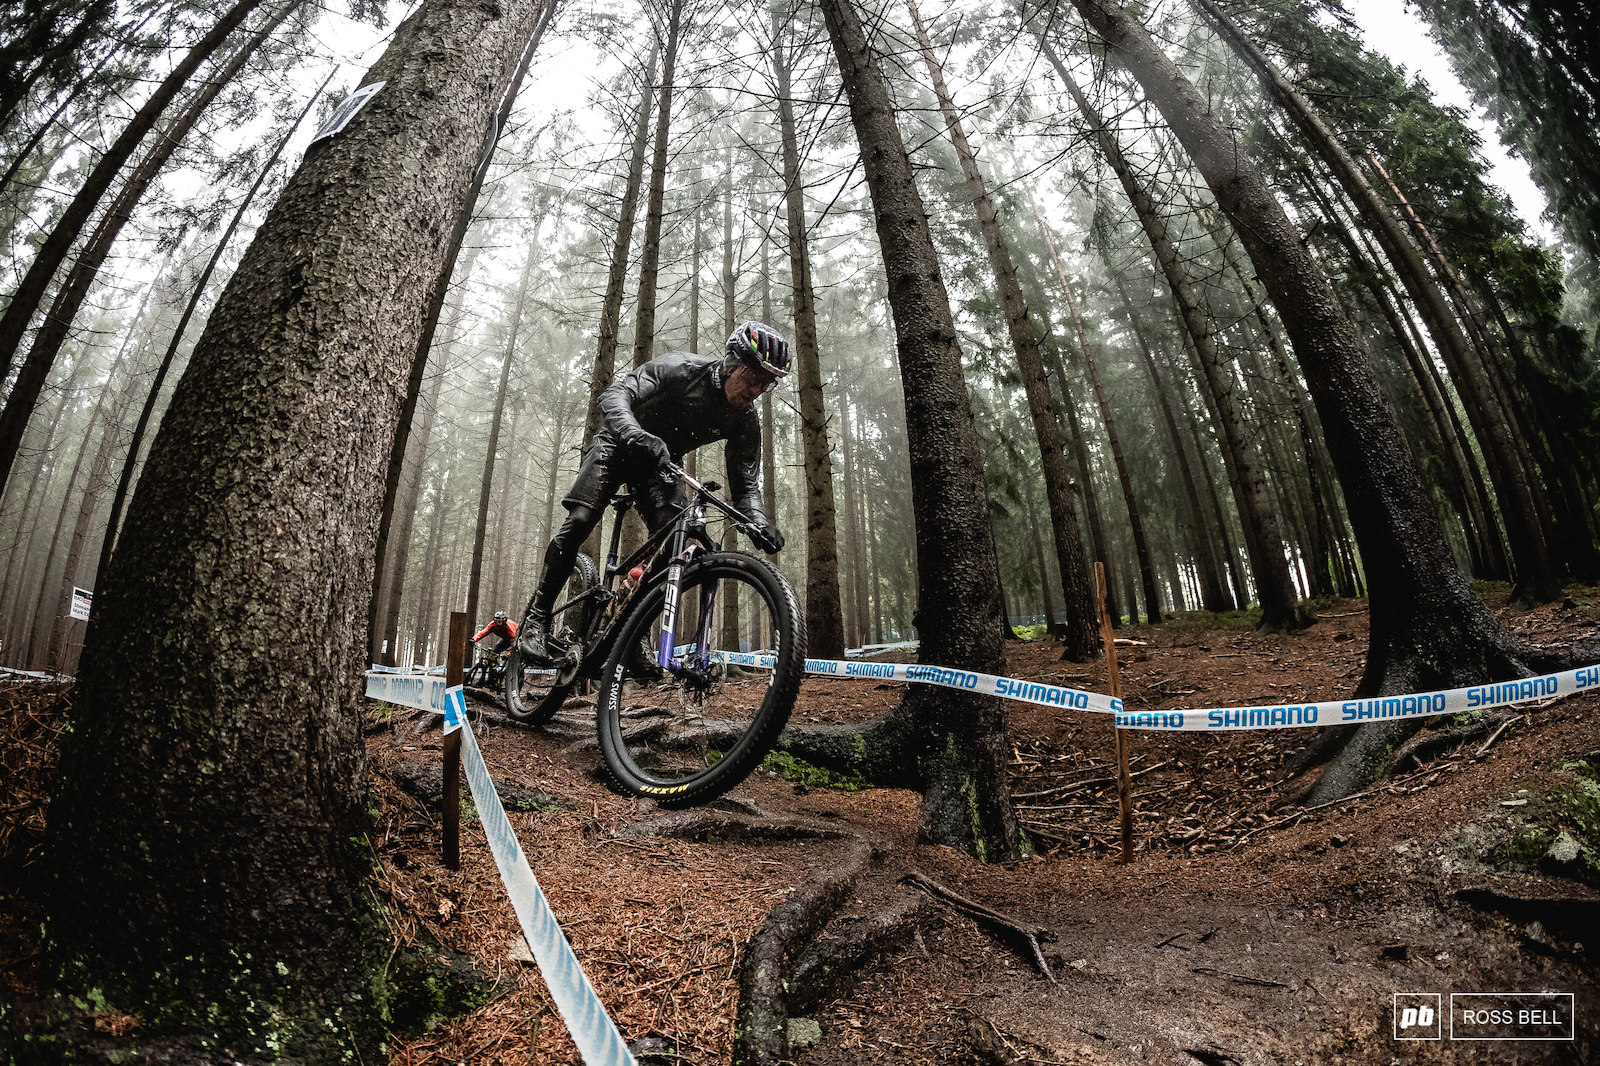 Nino Schurter will surely be the man to beat once again.